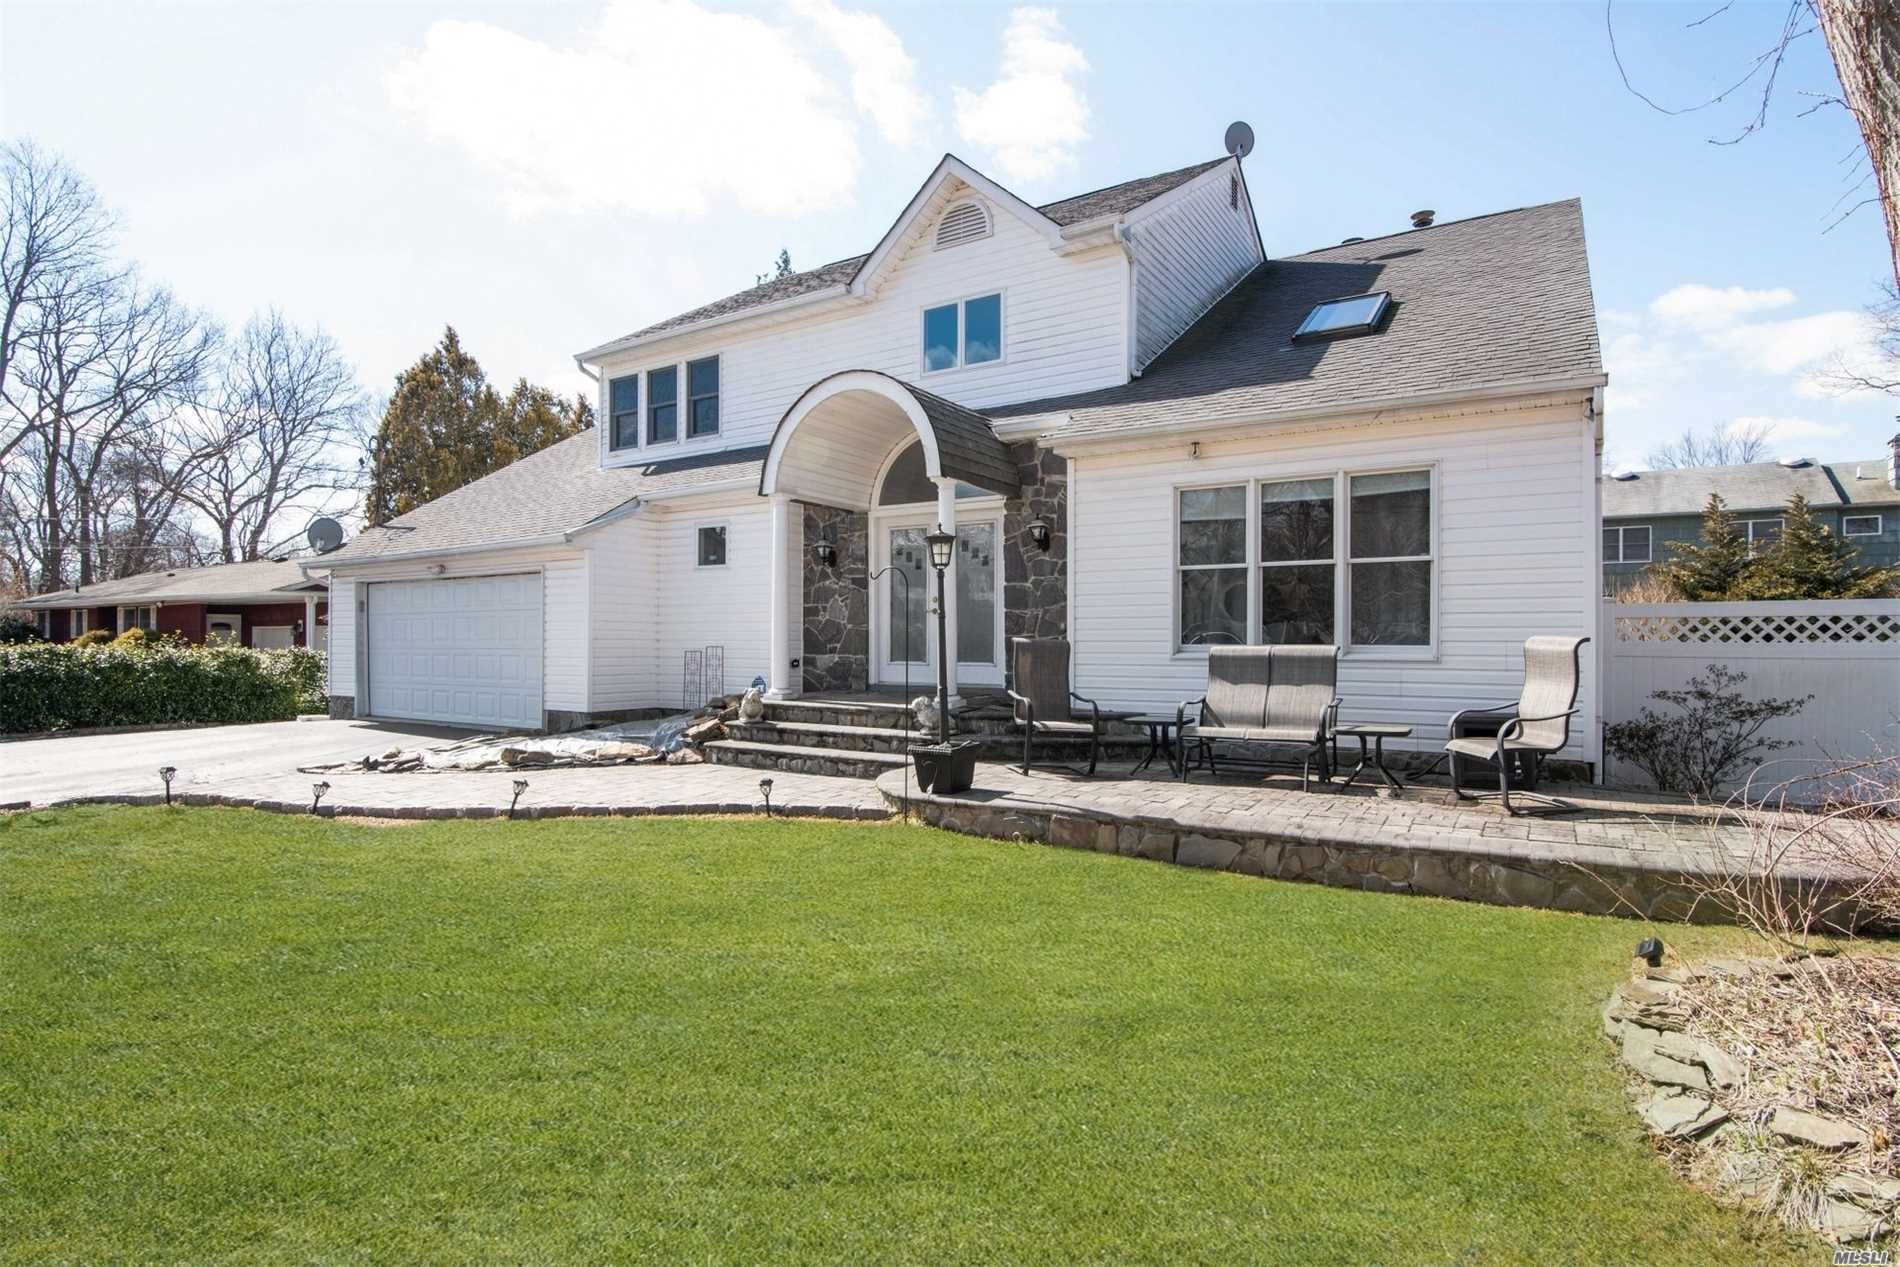 Beautiful sun drenched, airy Contemporary Colonial w/spacious rooms & layout, Newly painted & updated flooring thruout, 2018 CAC, 2016 Furnace & Hot Wtr Htr, Large Kitchen w/plenty of cabinets & pantry. A formal dining rm & a Great Den w/updated stone fireplace. Upstairs is a Large Master Bedrm w/ WIC & private ba. Laundry on Ground Flr. Two sets of glass sliding doors lead to backyd oasis w/semi-inground pool surrounded by firepit, stonework & benches. Large deck for BBQs. Koi Pond included.